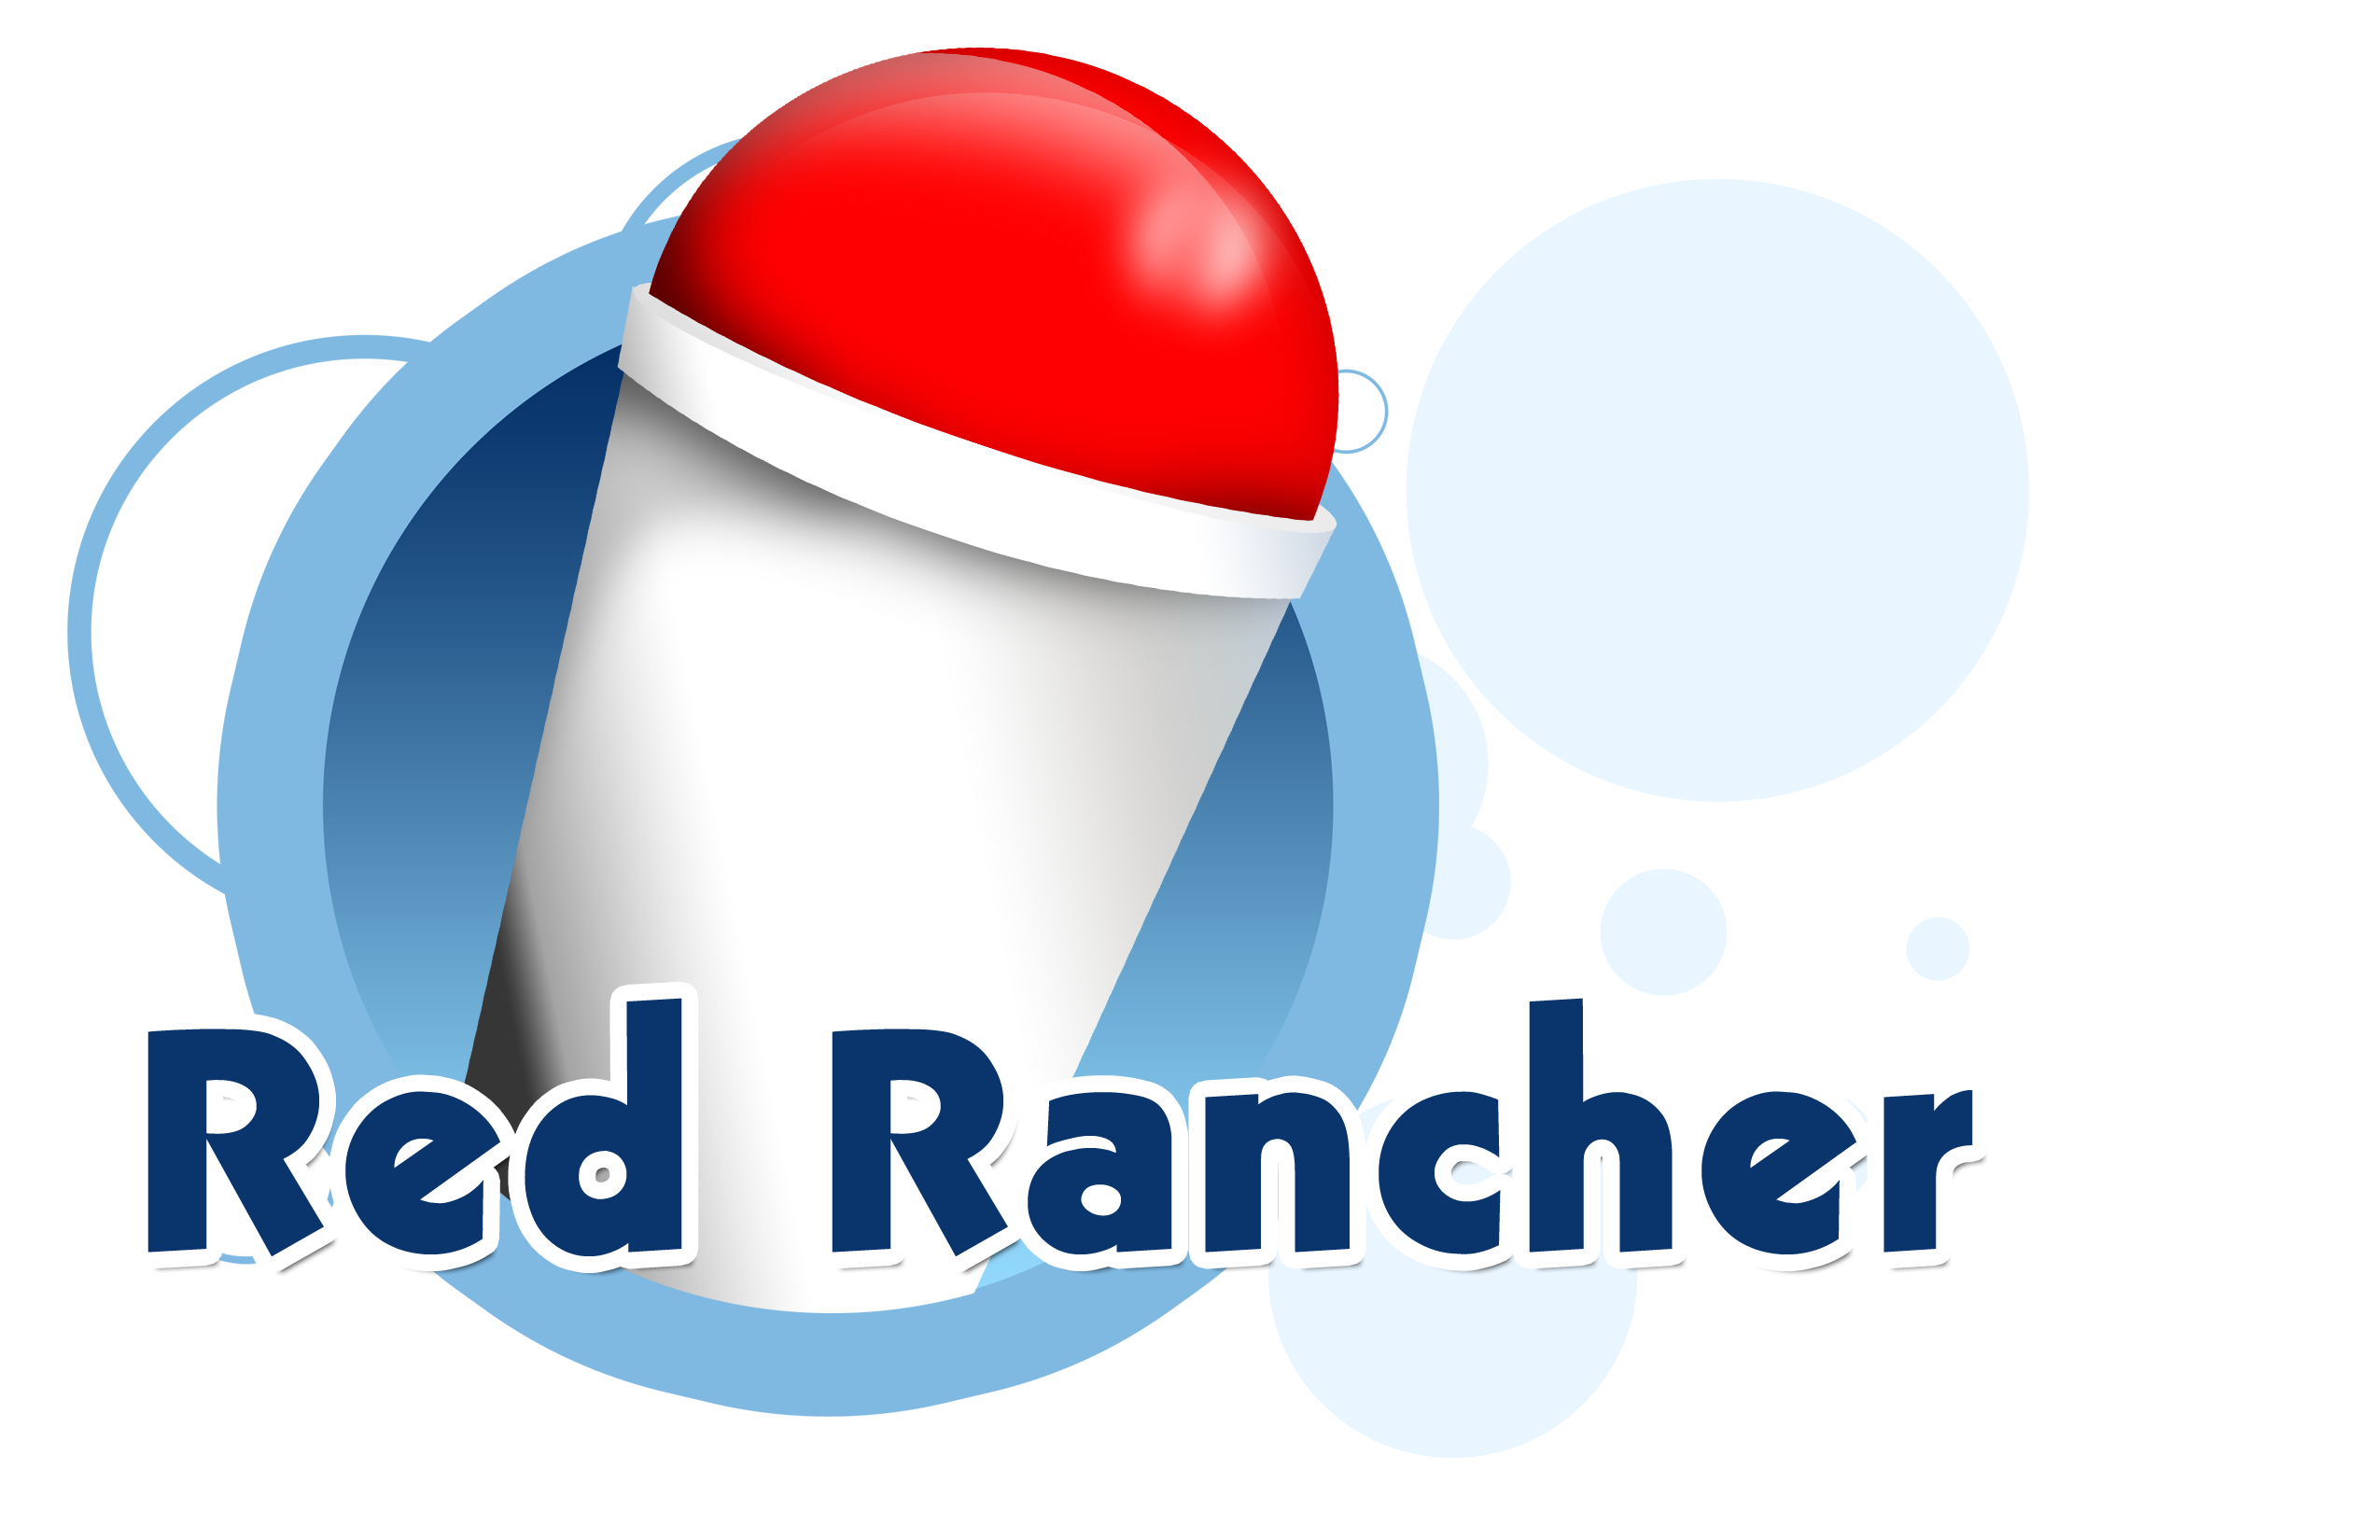 Red Rancher